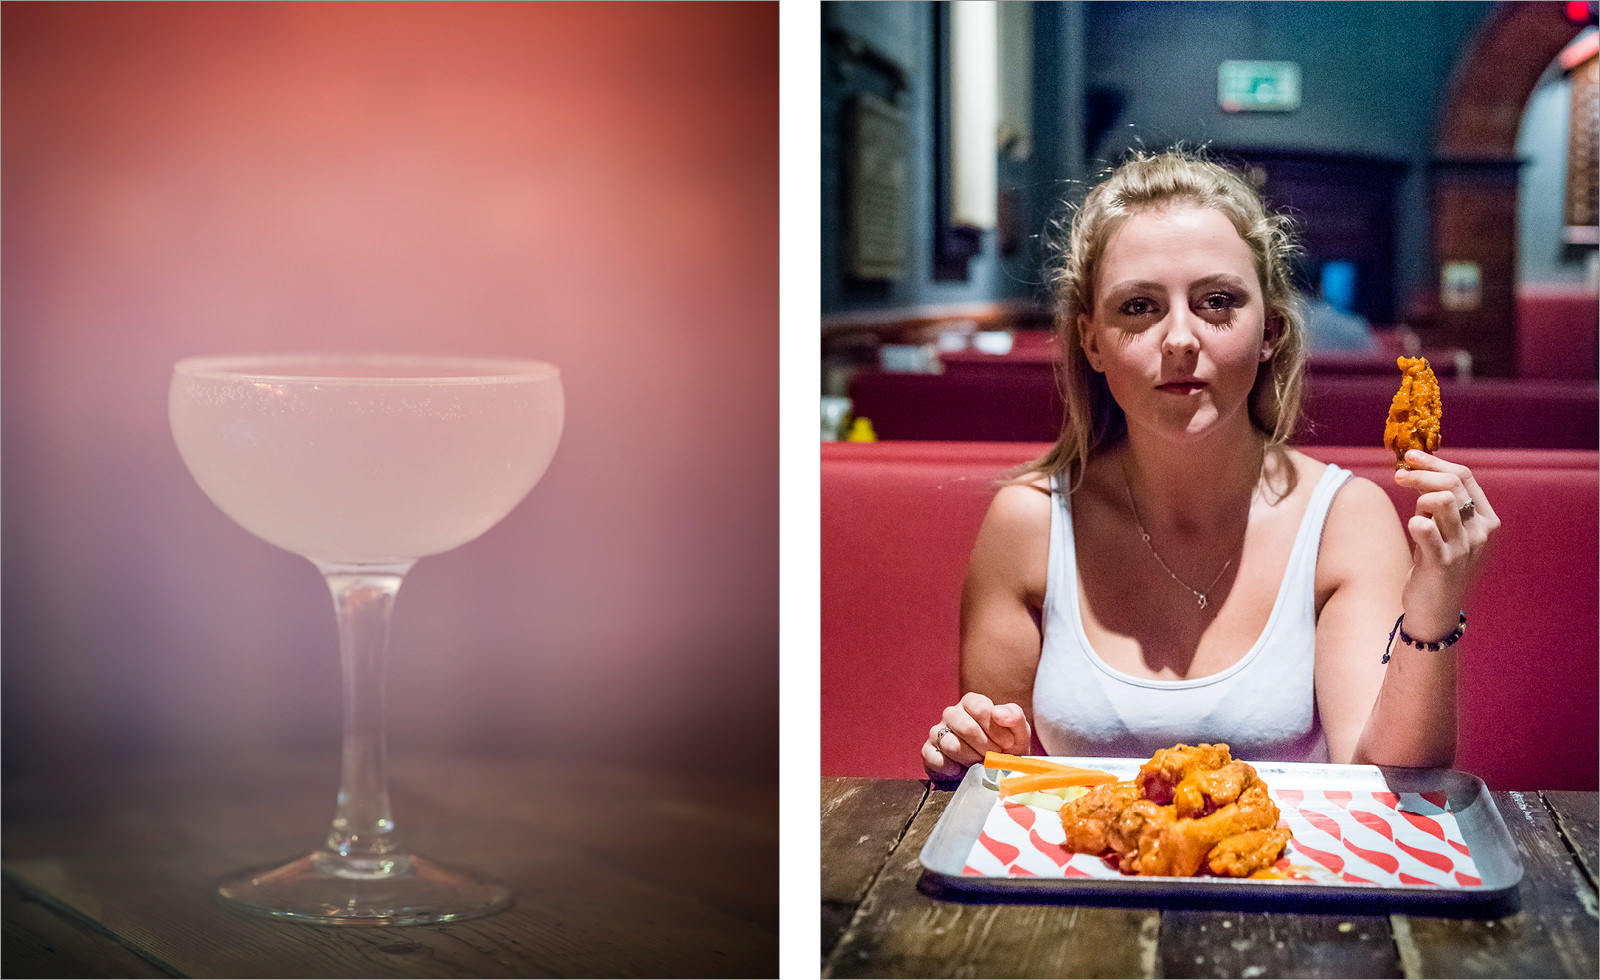 MEATLiquor - Books | Published Work photographer pwf